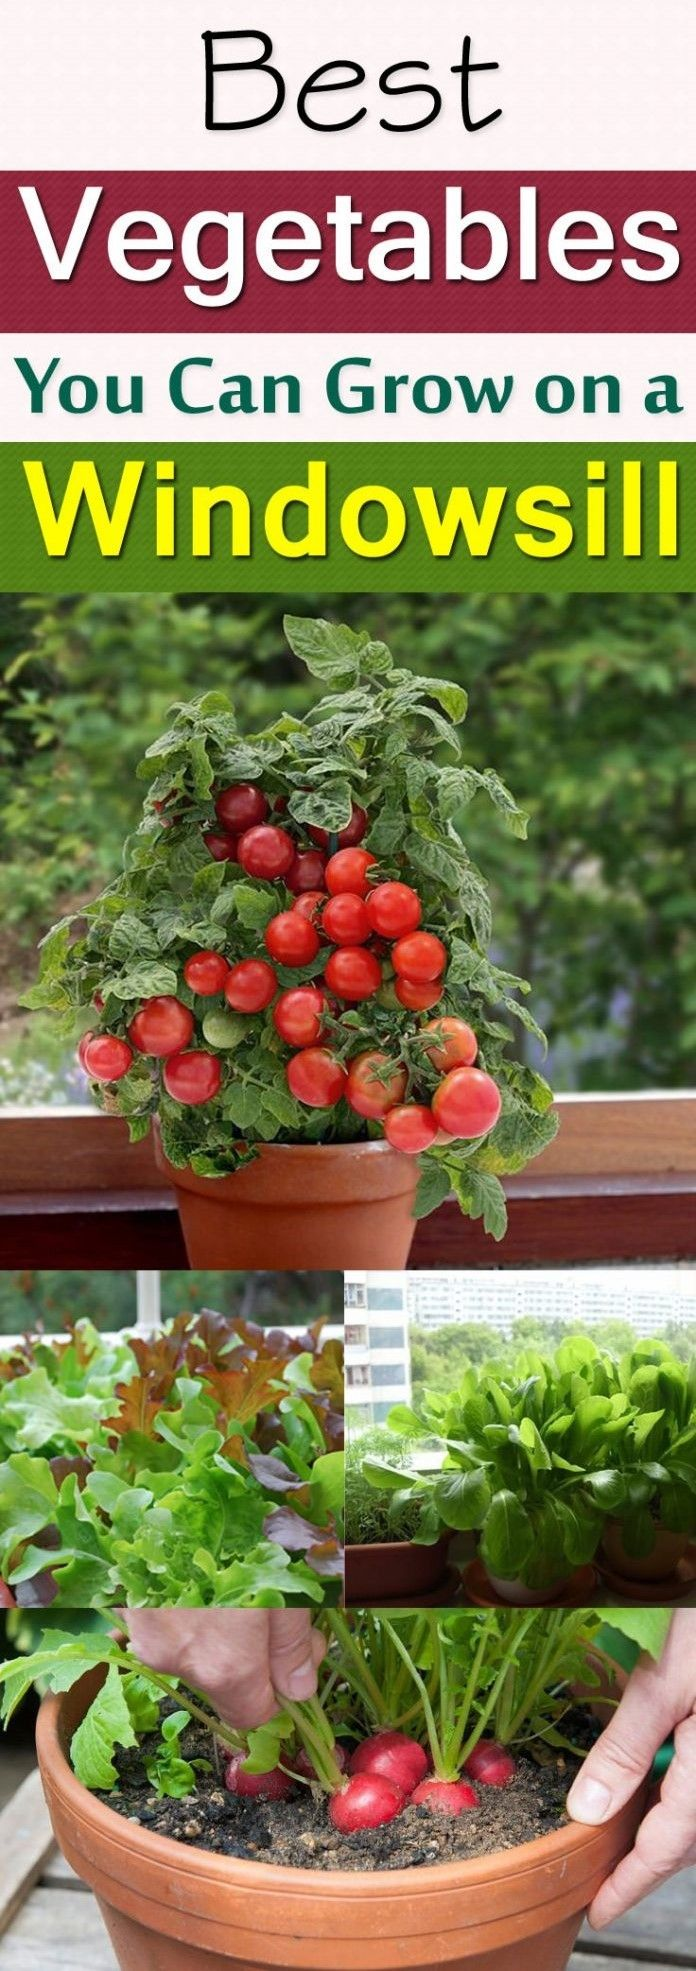 1000 images about diy gardening ideas on pinterest for Gardening 101 vegetables